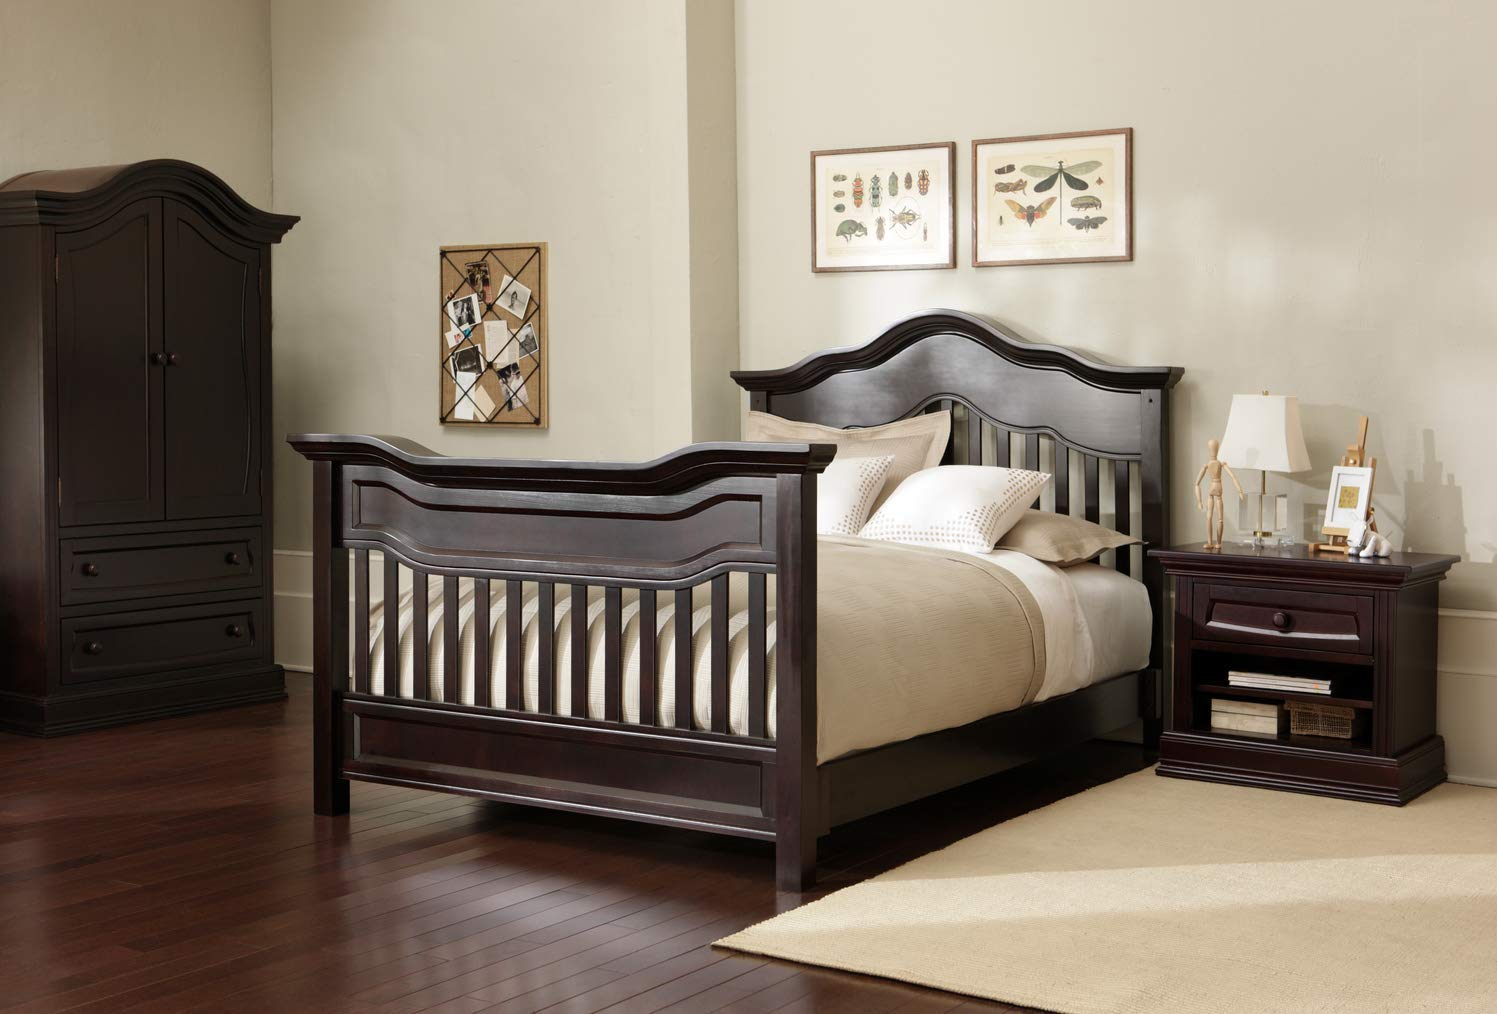 Full Size Conversion Kit Bed Rails for Baby Appleseed Beaumont, Chelmsford, Davenport, Kennedy, Millbury, Stratford Cribs (Espresso) by CC KITS (Image #7)